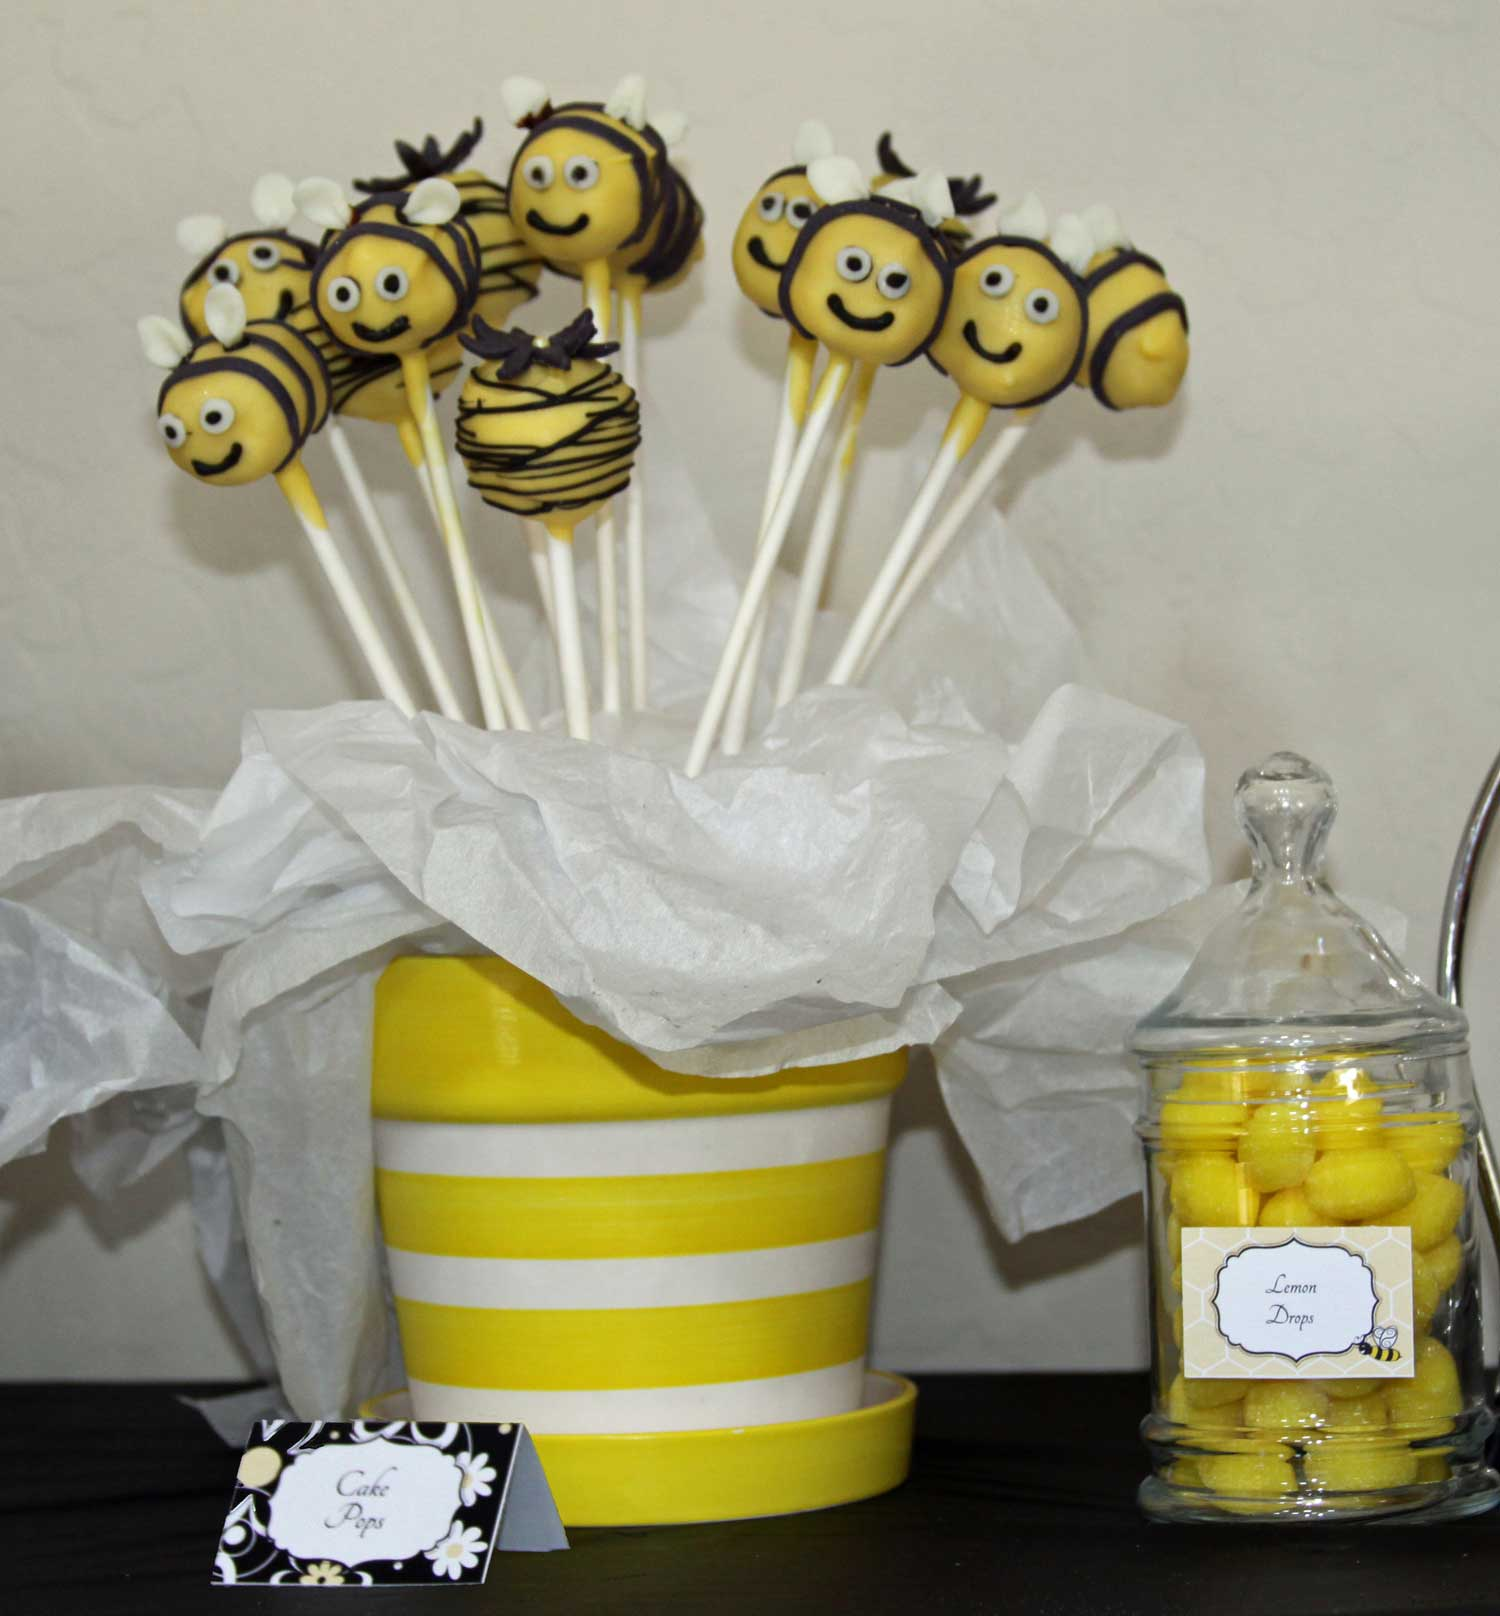 Cake pops shaped lke Bumble Bees